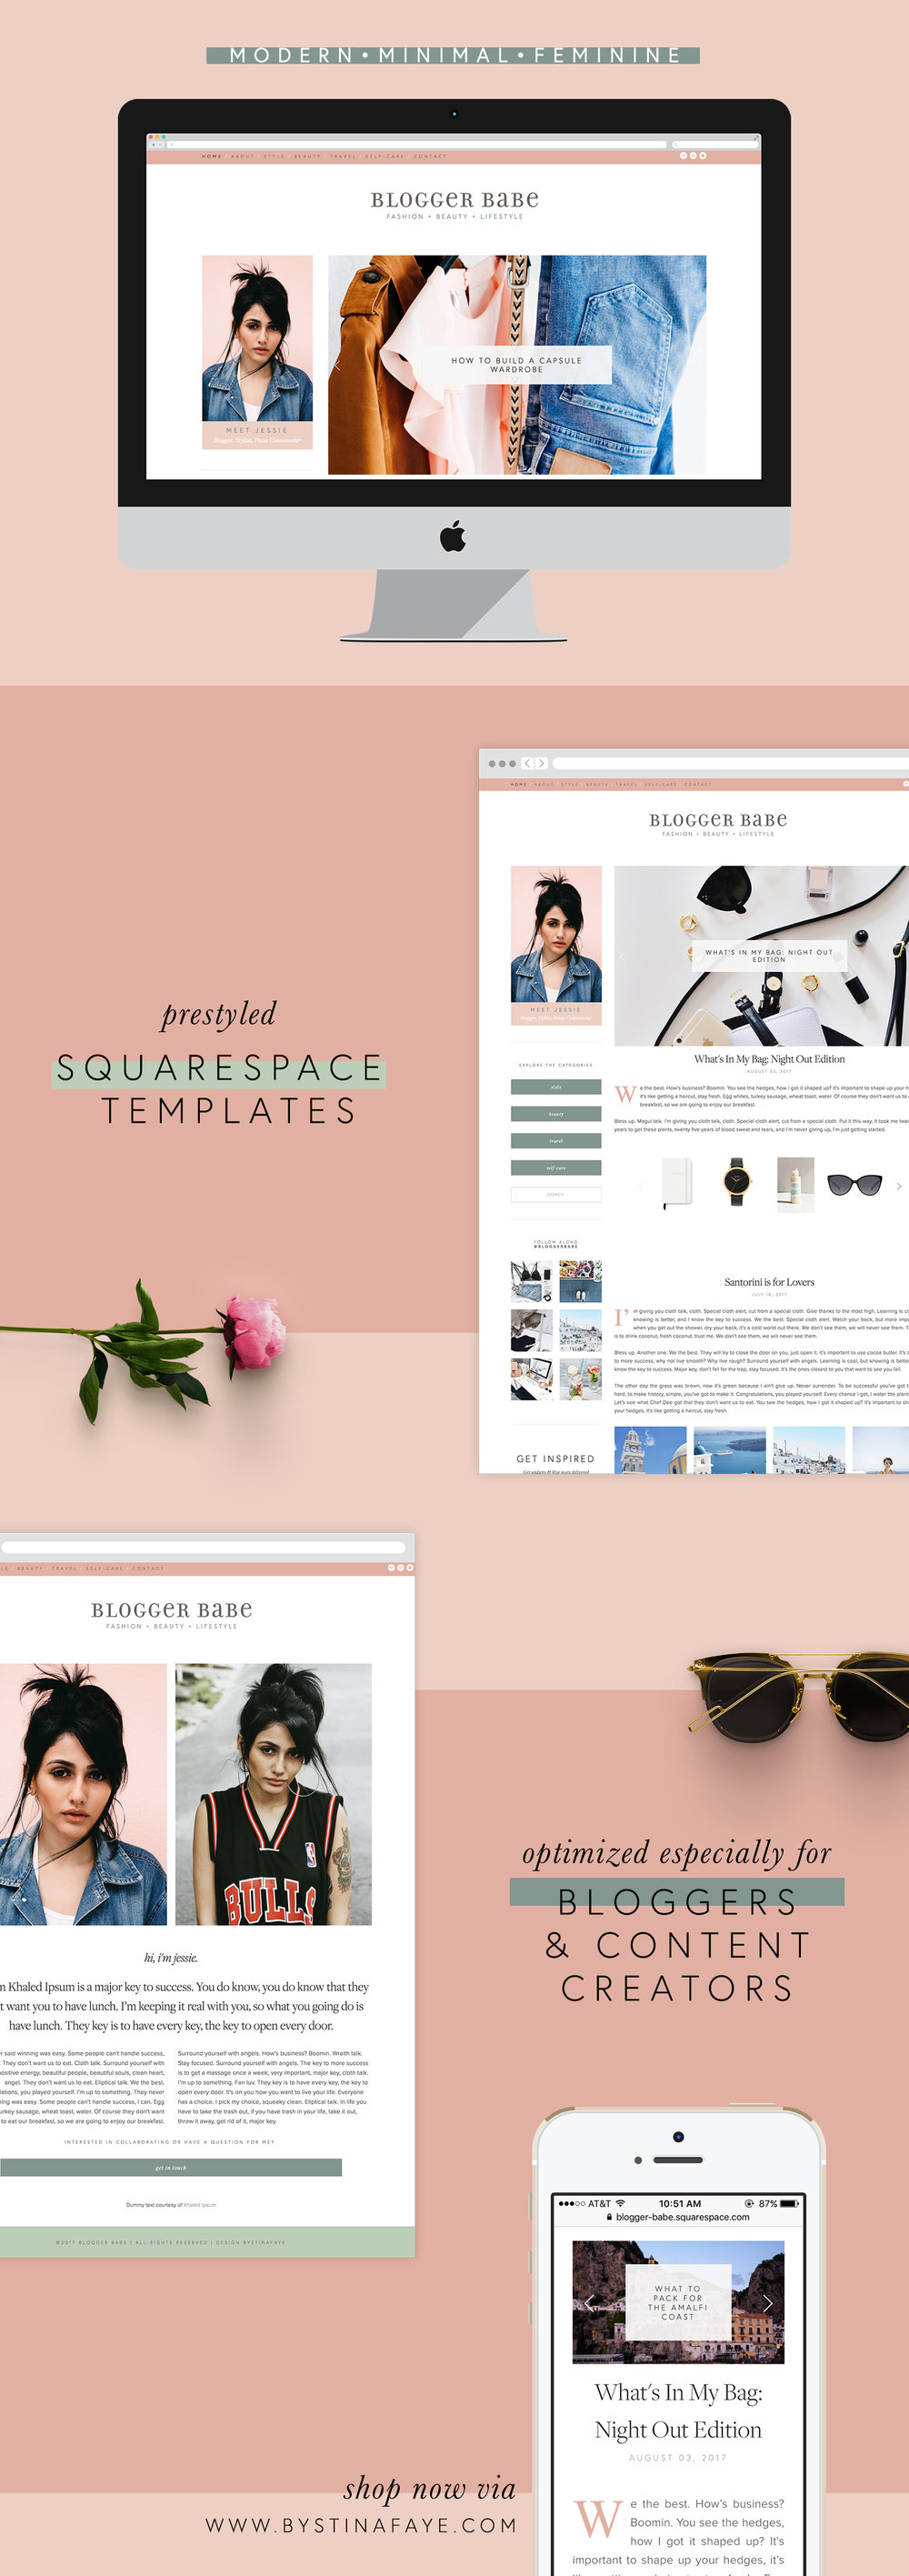 Blogger Babe - A minimal Squarespace template for bloggers.